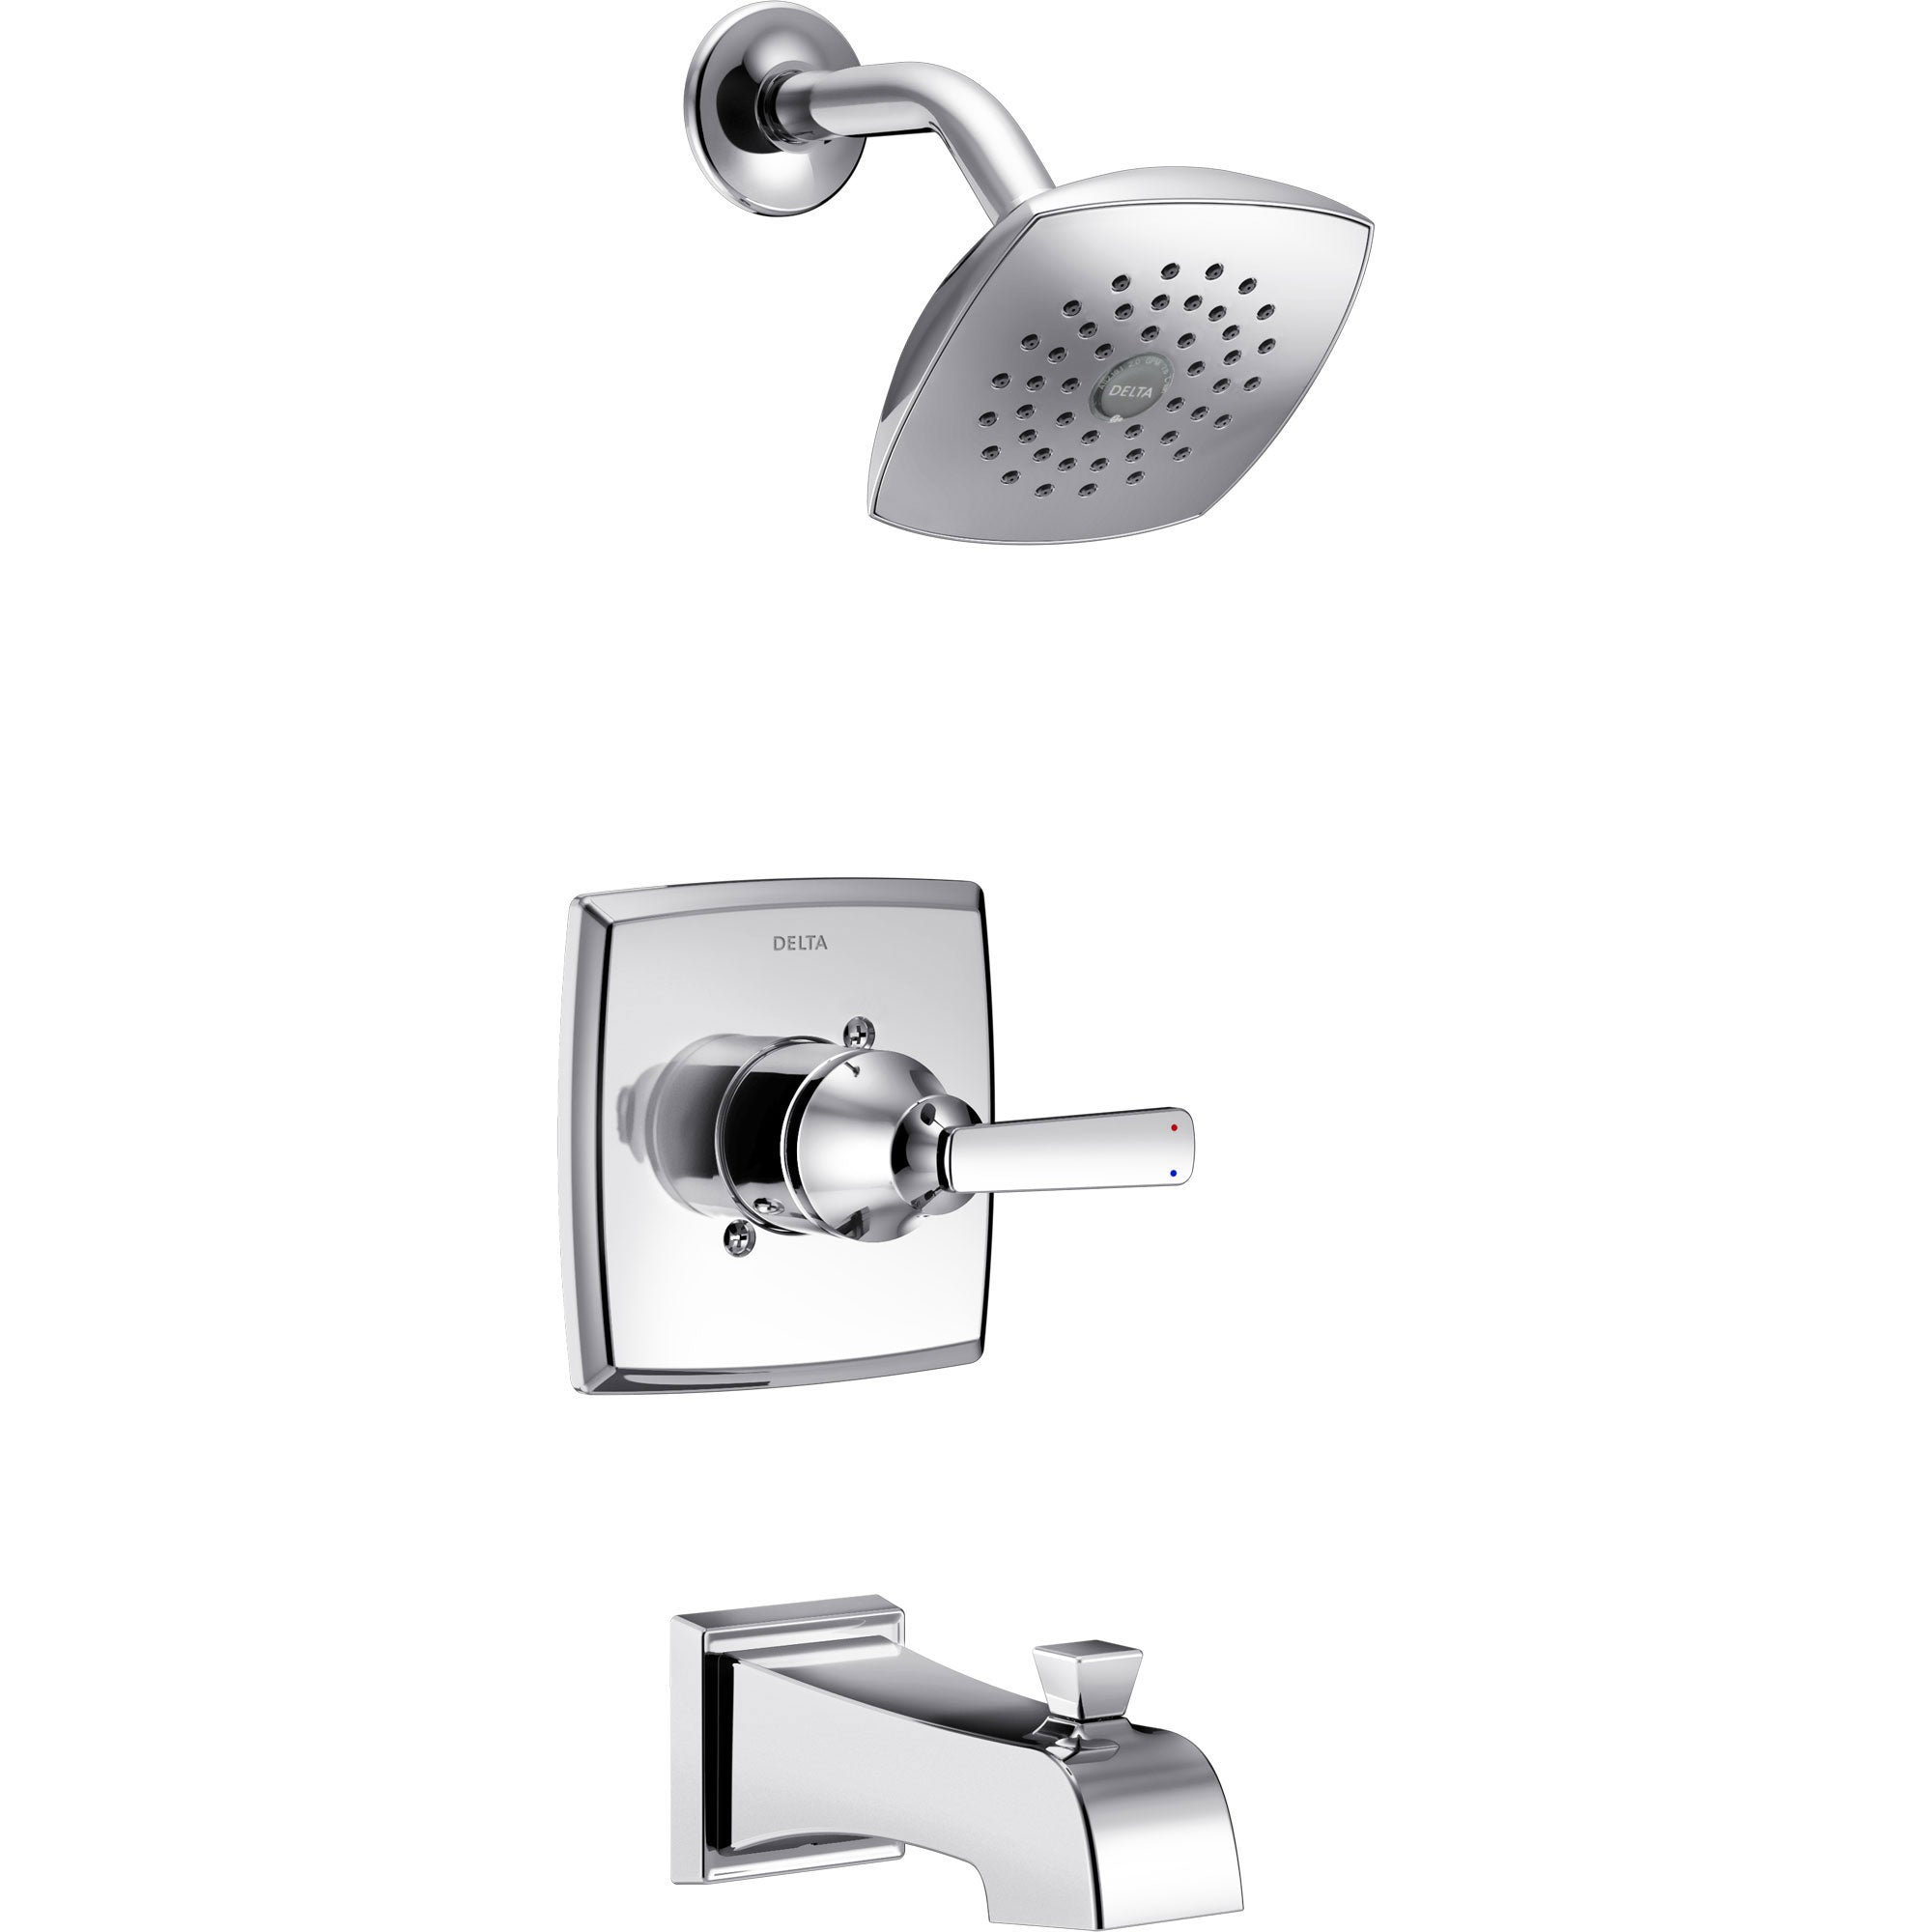 Delta Ashlyn Modern Chrome Finish 14 Series Watersense Single Handle Tub and Shower Combination Faucet INCLUDES Rough-in Valve D1174V